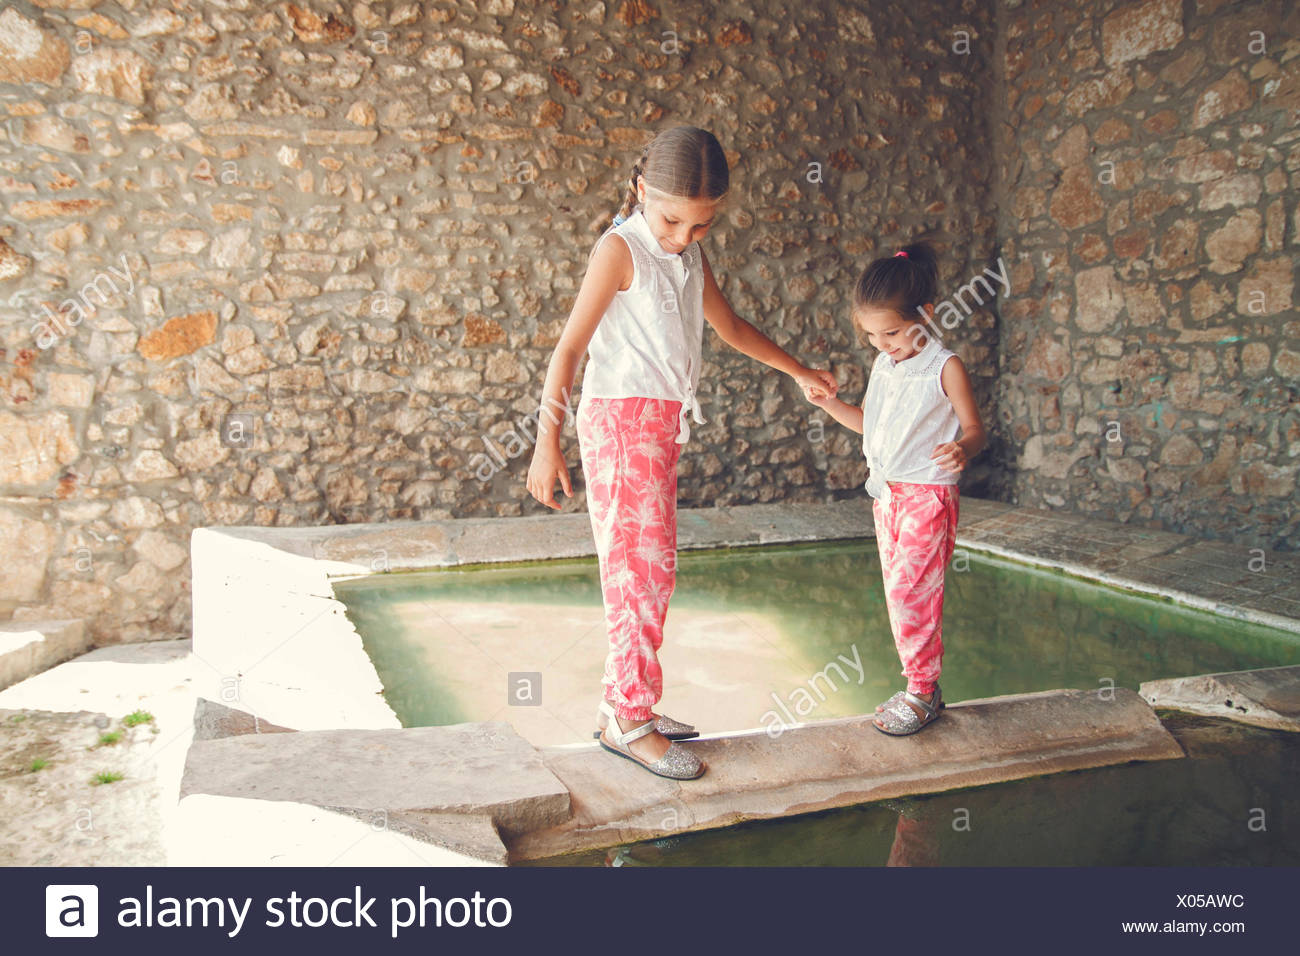 Two girls walking along ledge by a pool of water - Stock Image